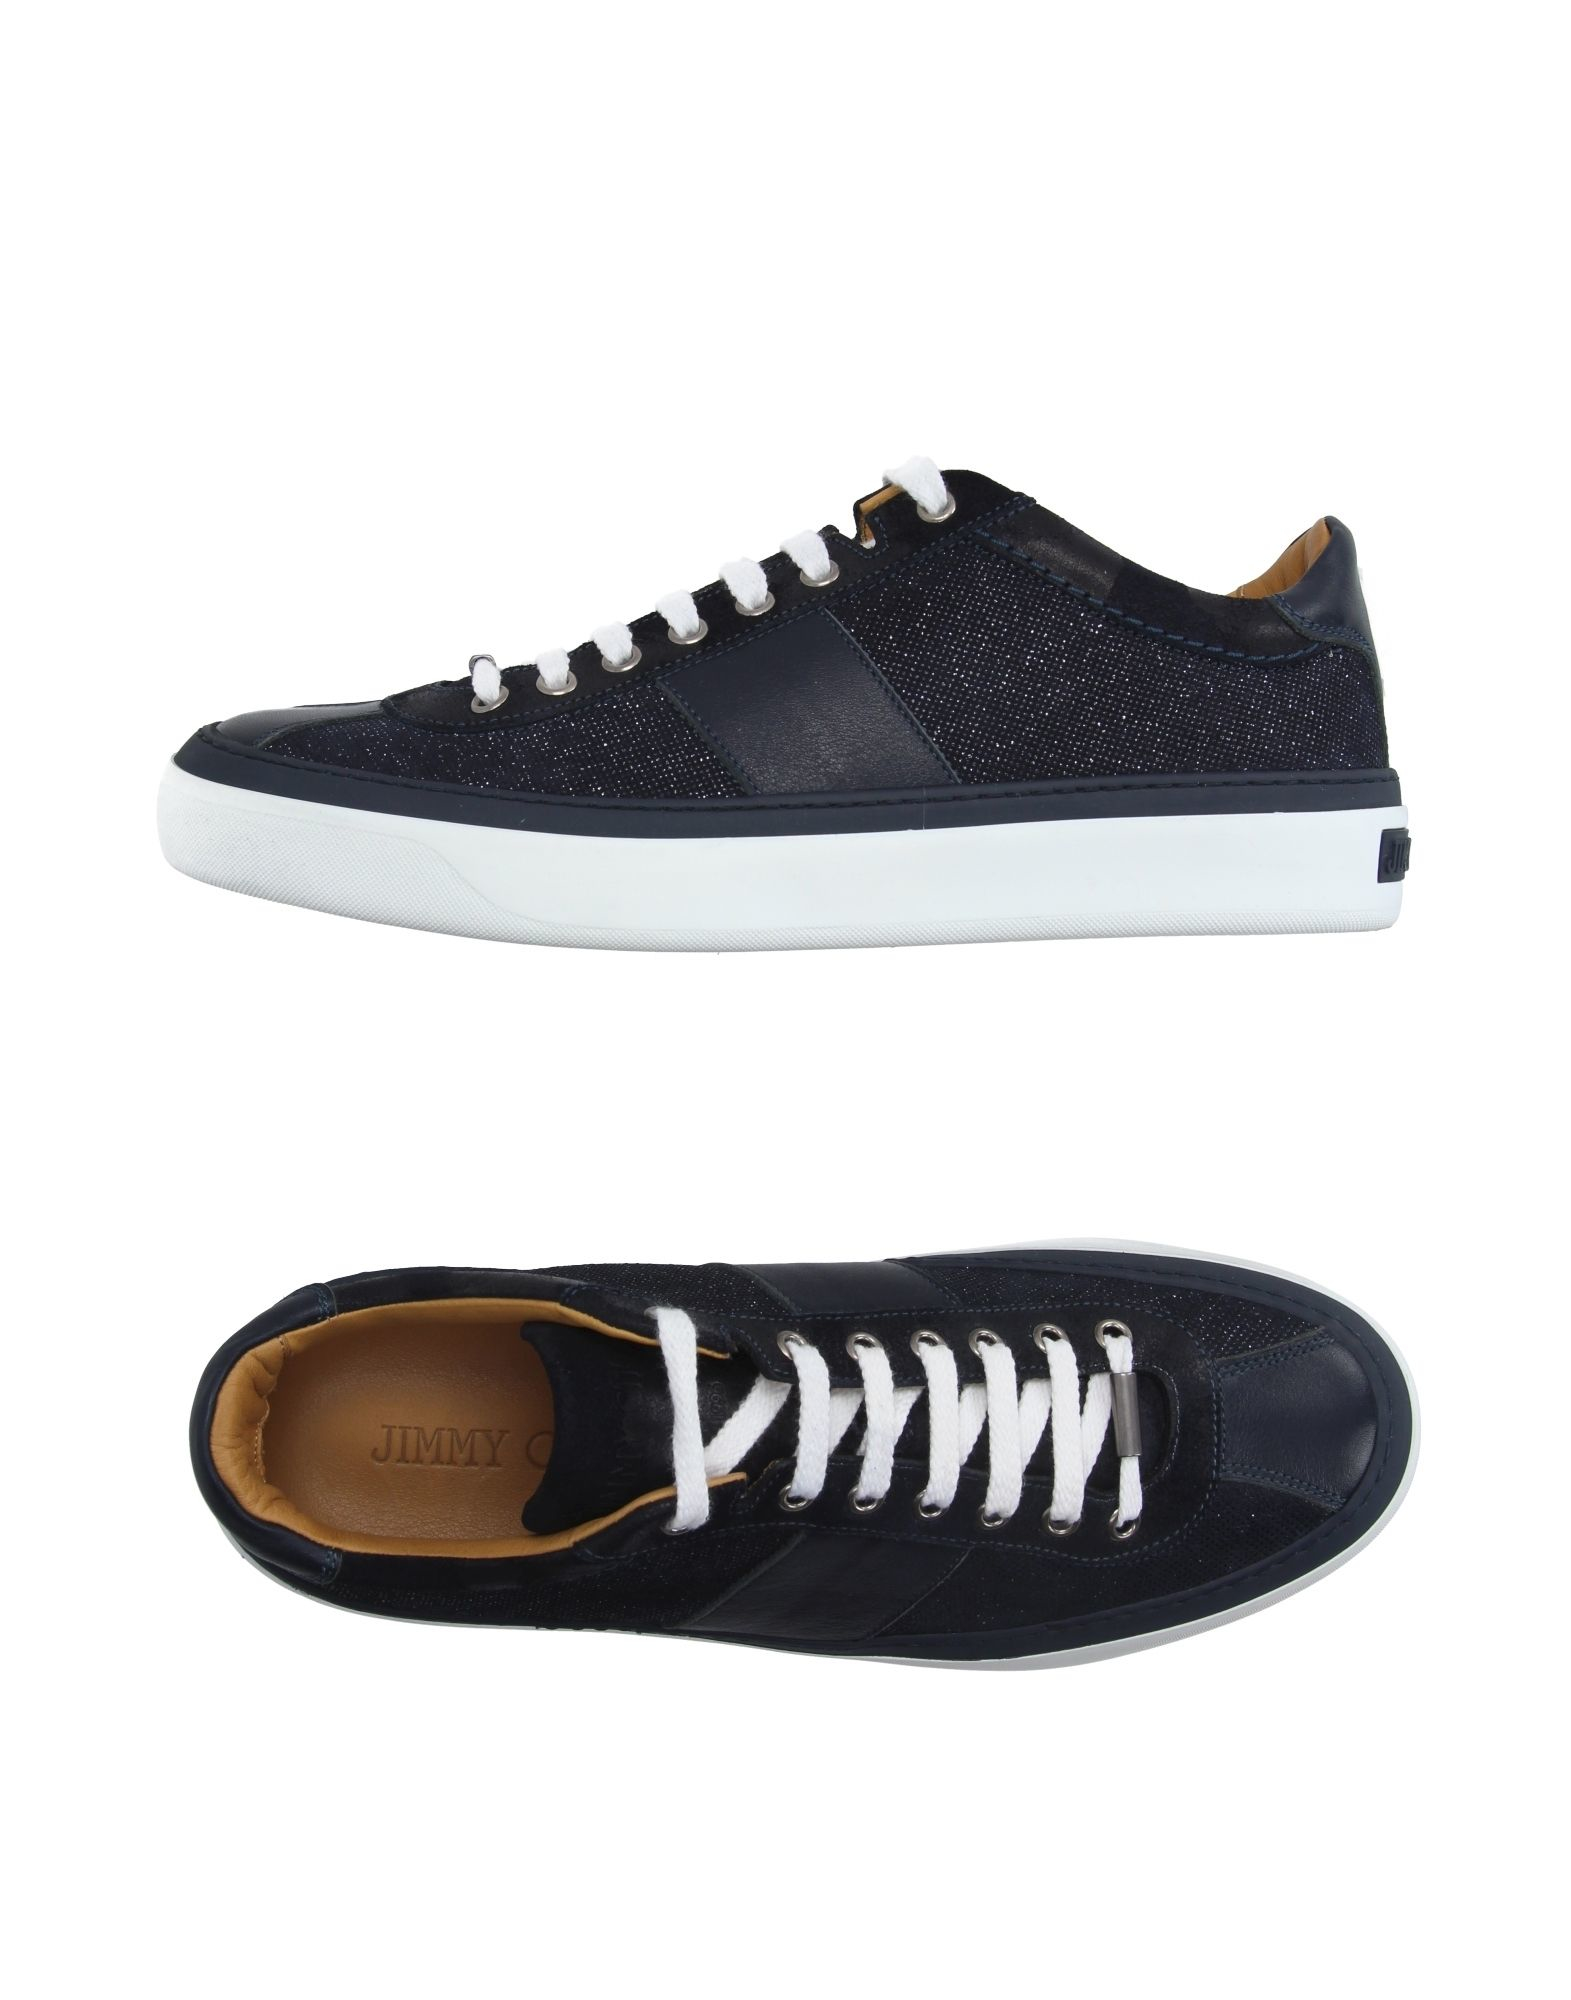 FOOTWEAR - Low-tops & sneakers Jimmy Choo London OCmuf5g